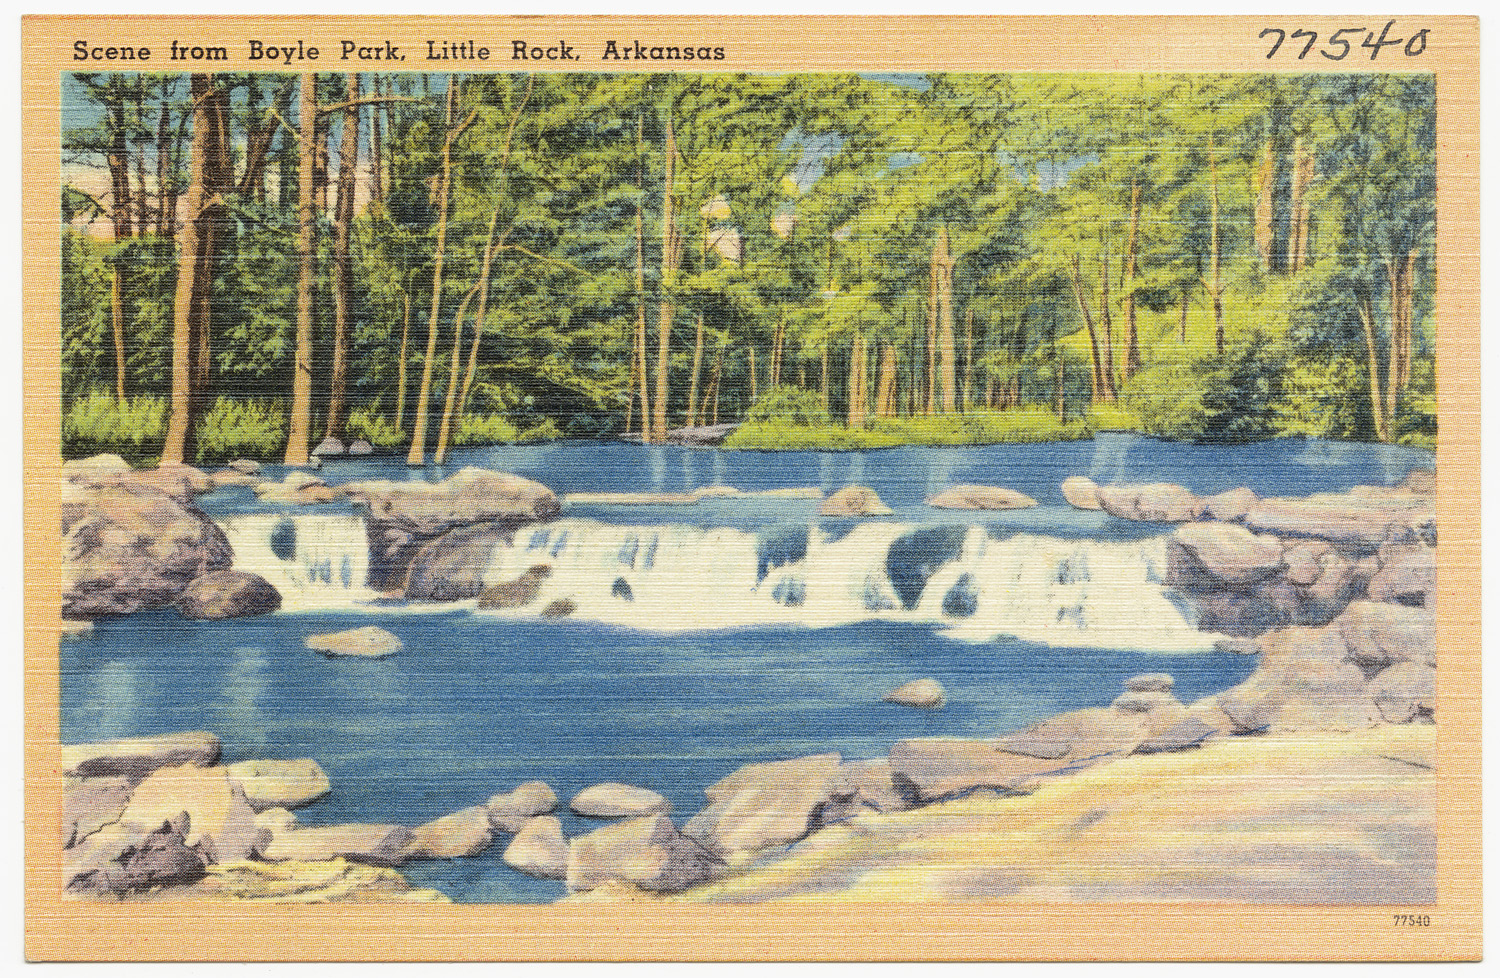 Here is an old post card depicting a small water fall along Rock Creek in Boyle Park.